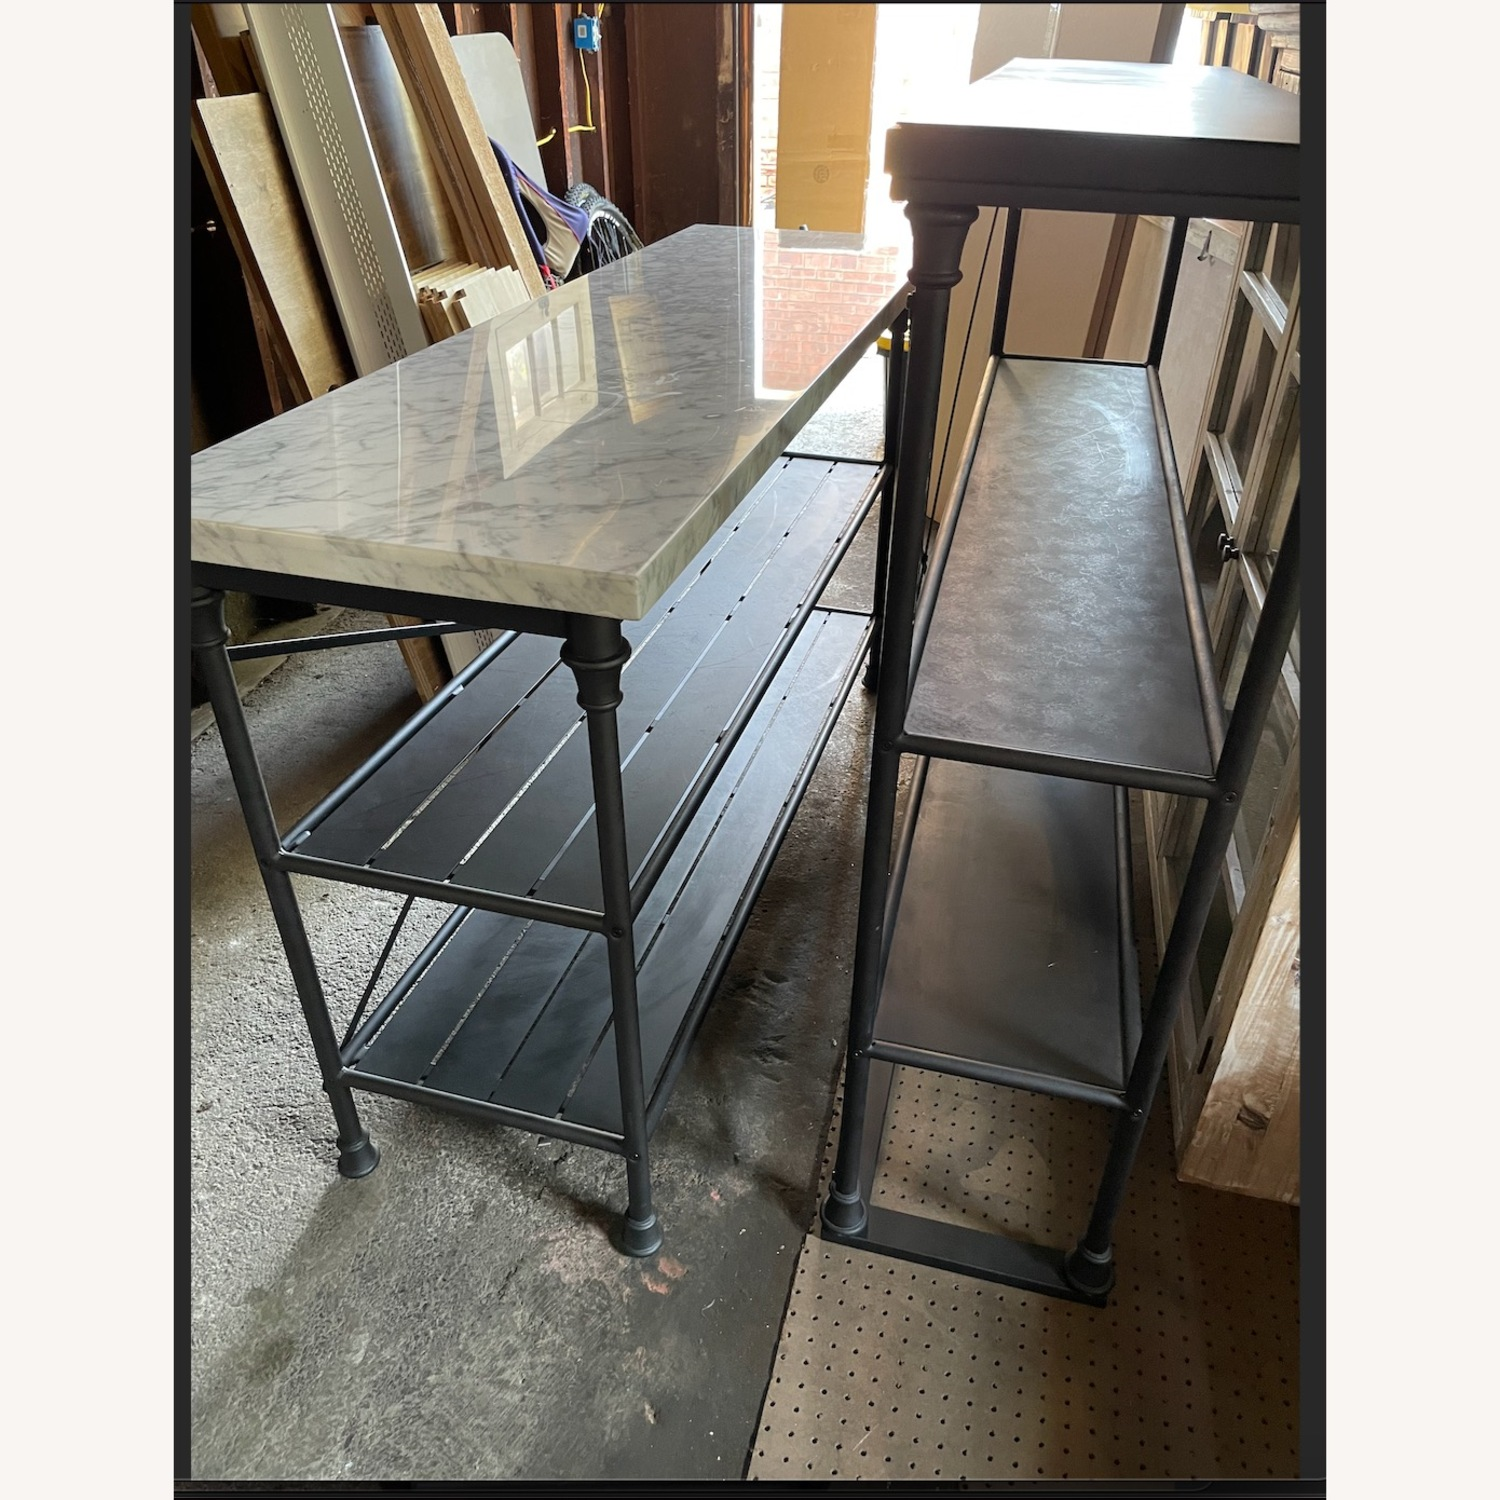 Crate & Barrel French Kitchen Bakers Rack with Hutch - image-3